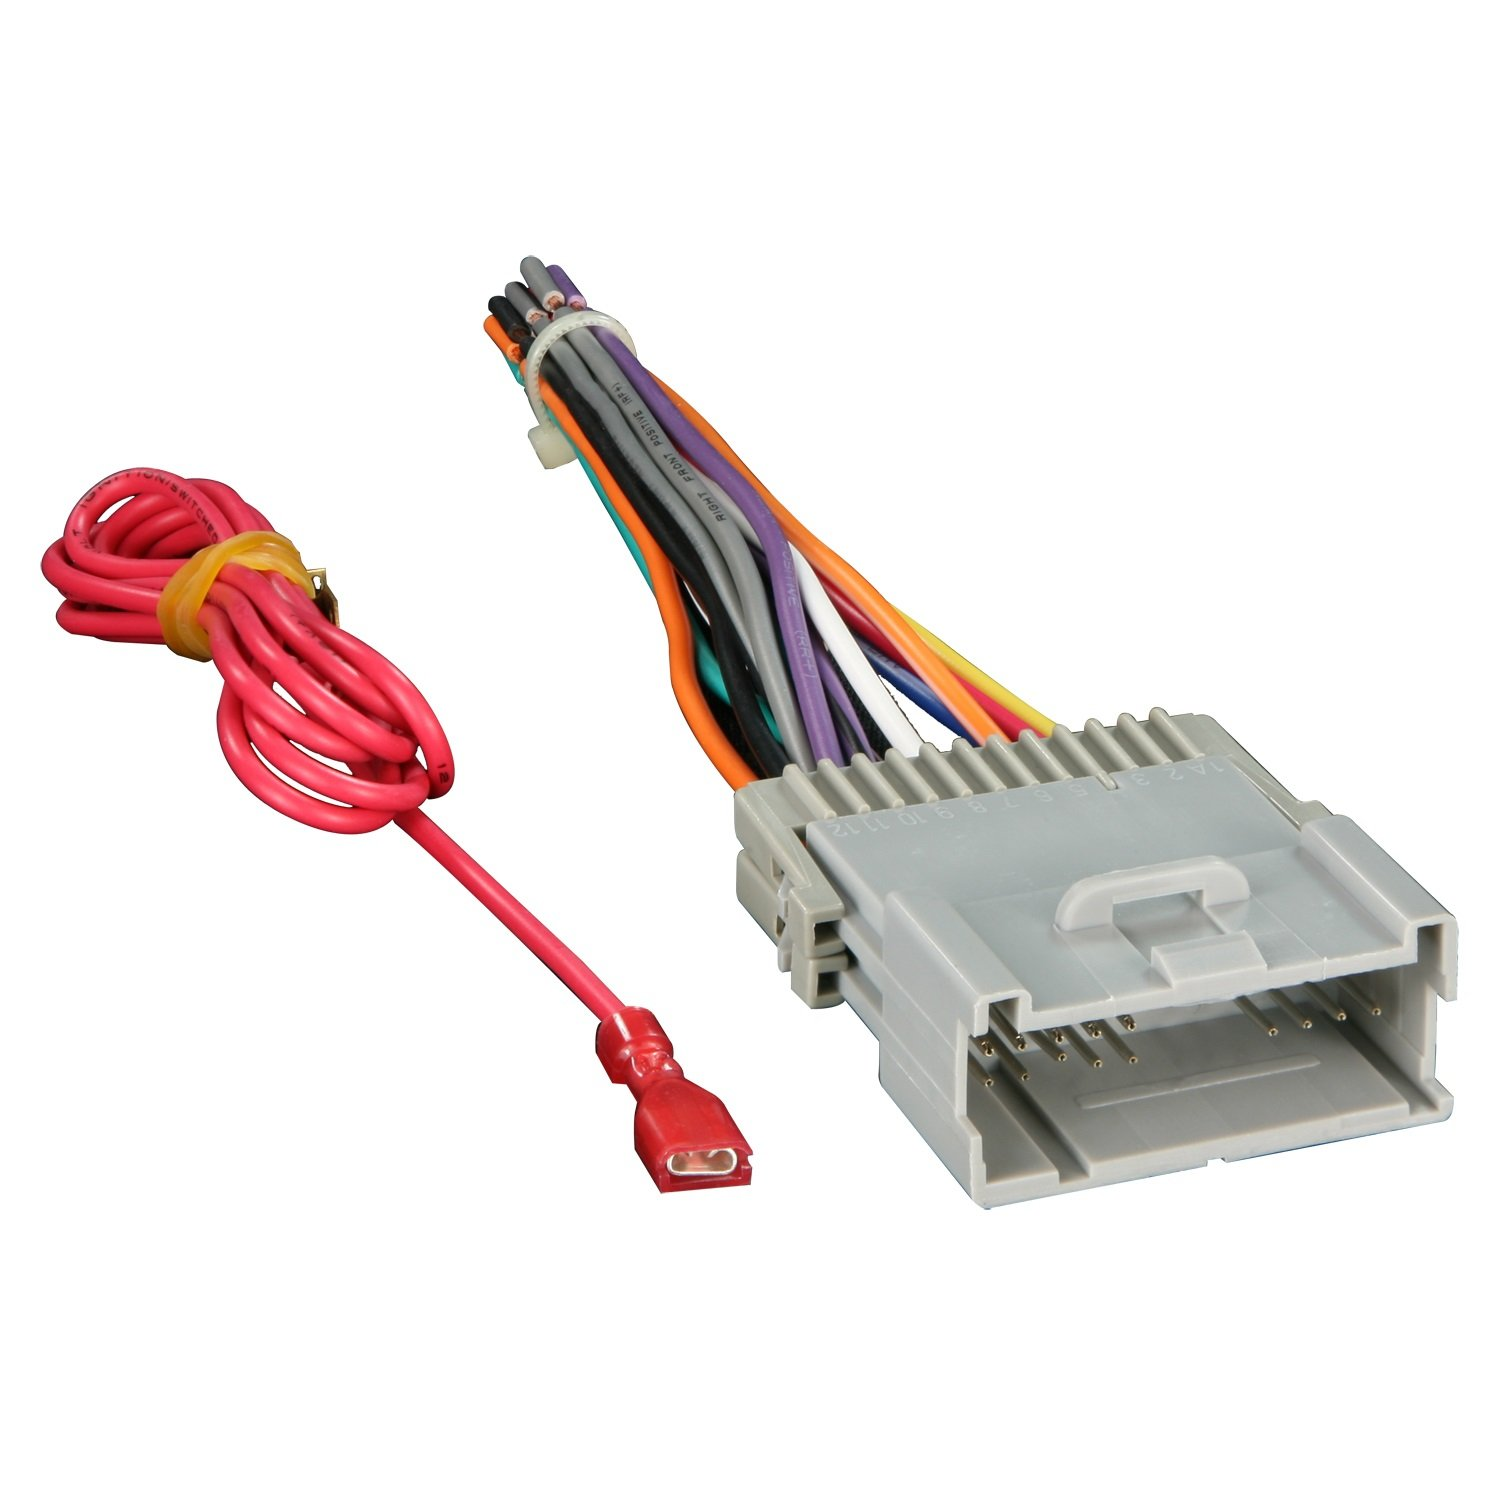 61eewxp9orL._SL1500_ amazon com metra 70 2003 radio wiring harness for gm 98 08 snap on wire harness adapter at n-0.co